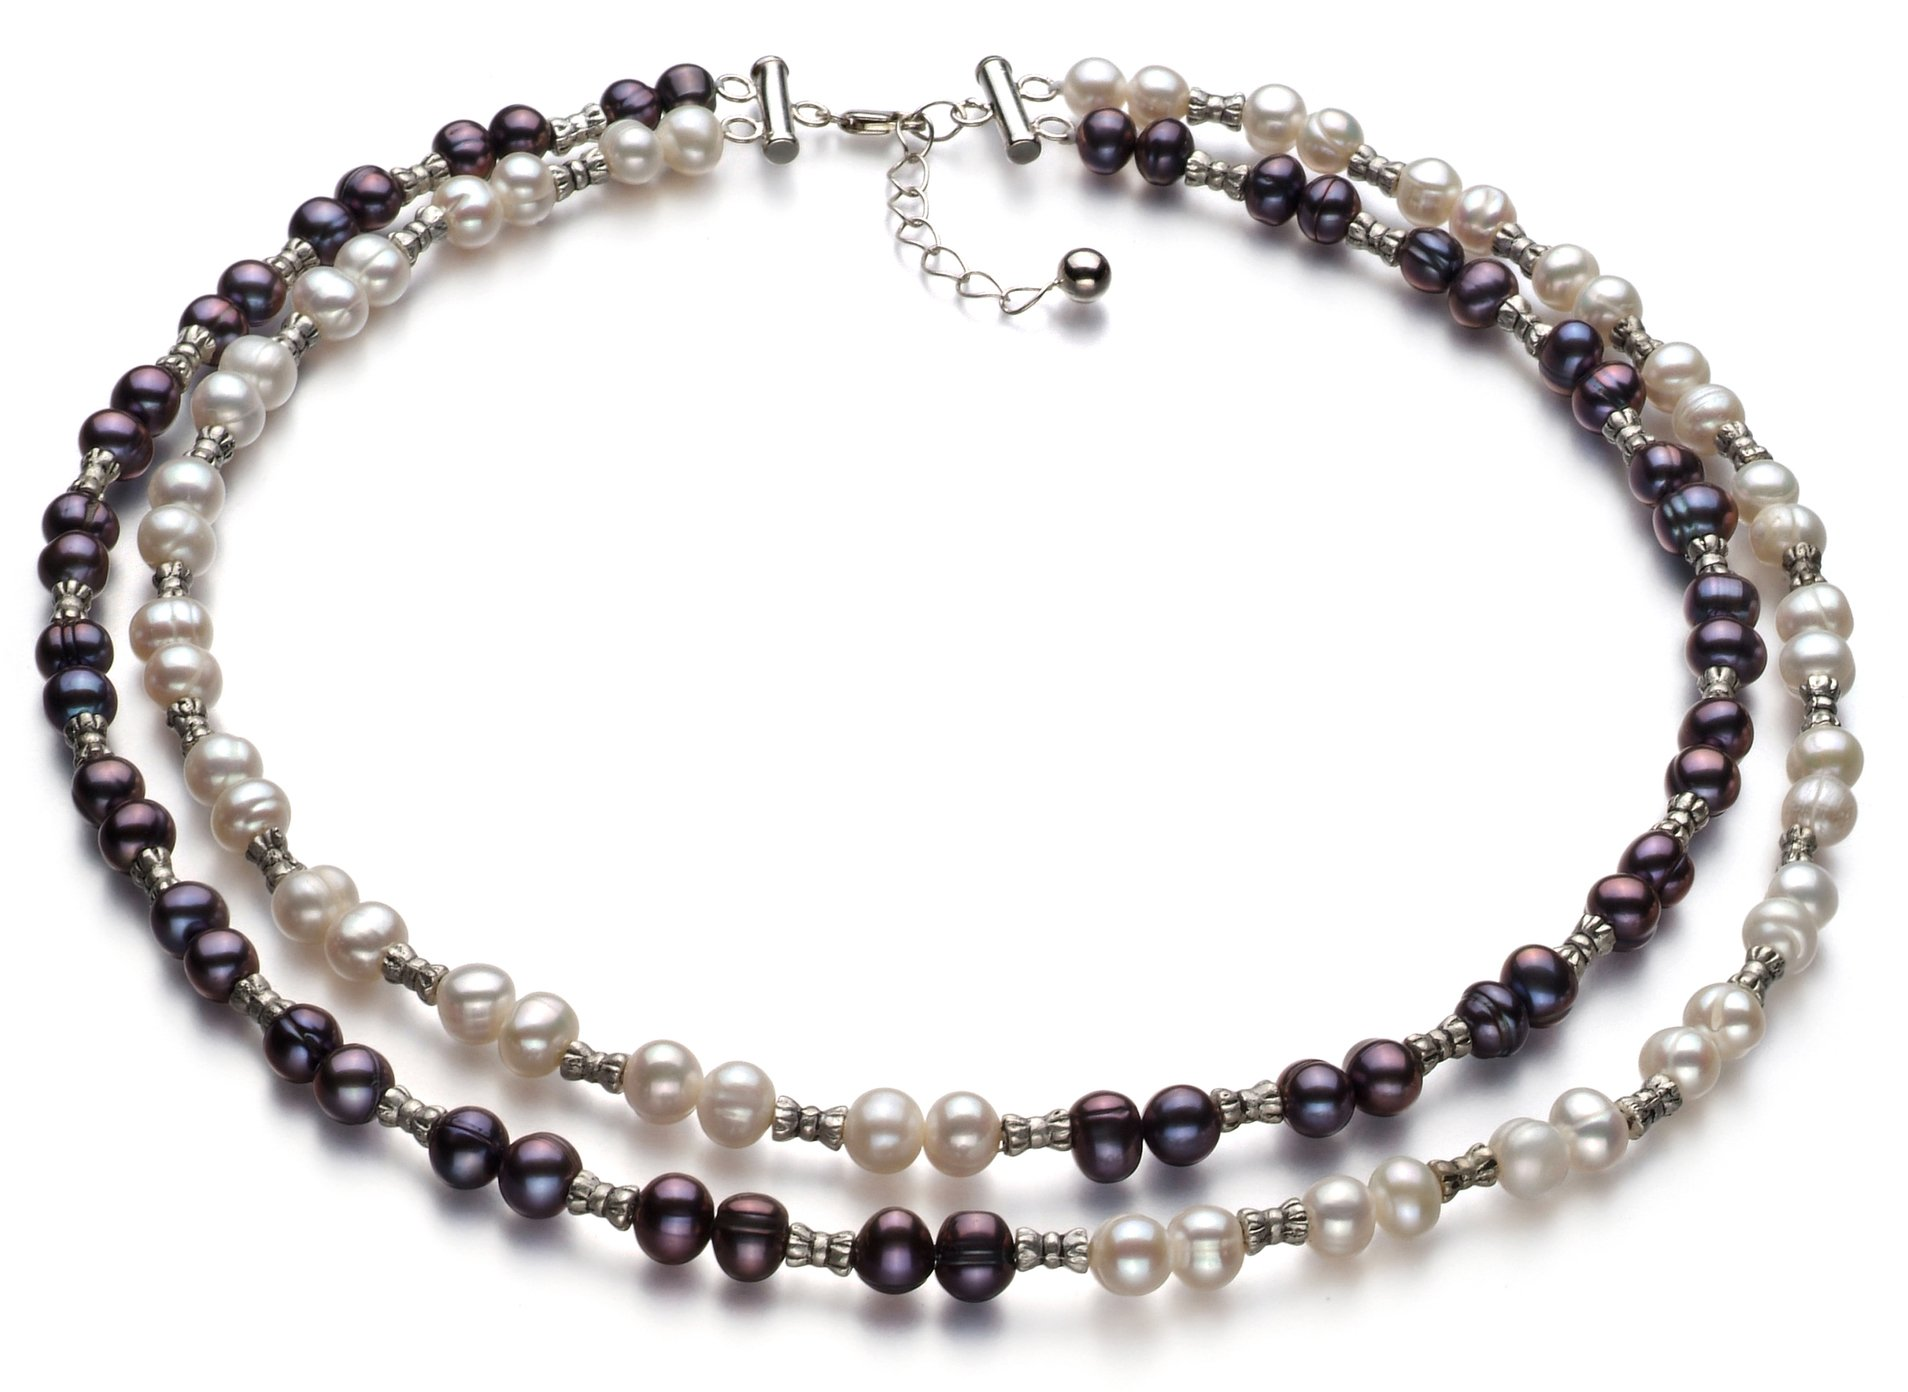 YinYang Black and White 6-7mm Double Strand A Quality Freshwater 925 Sterling Silver Cultured Pearl Necklace-18 in Princess length